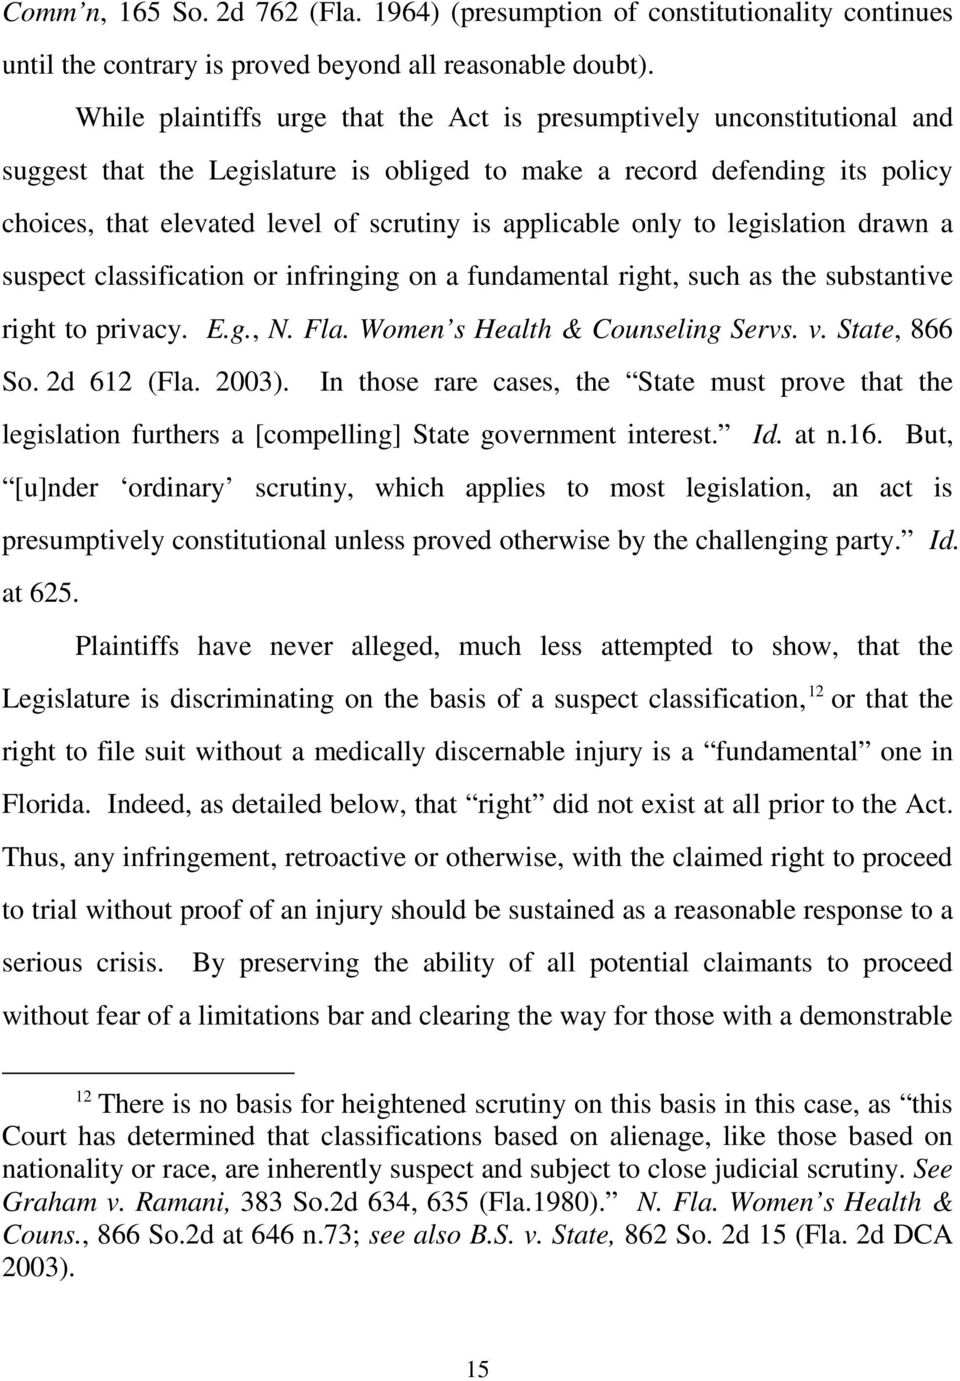 applicable only to legislation drawn a suspect classification or infringing on a fundamental right, such as the substantive right to privacy. E.g., N. Fla. Women s Health & Counseling Servs. v.